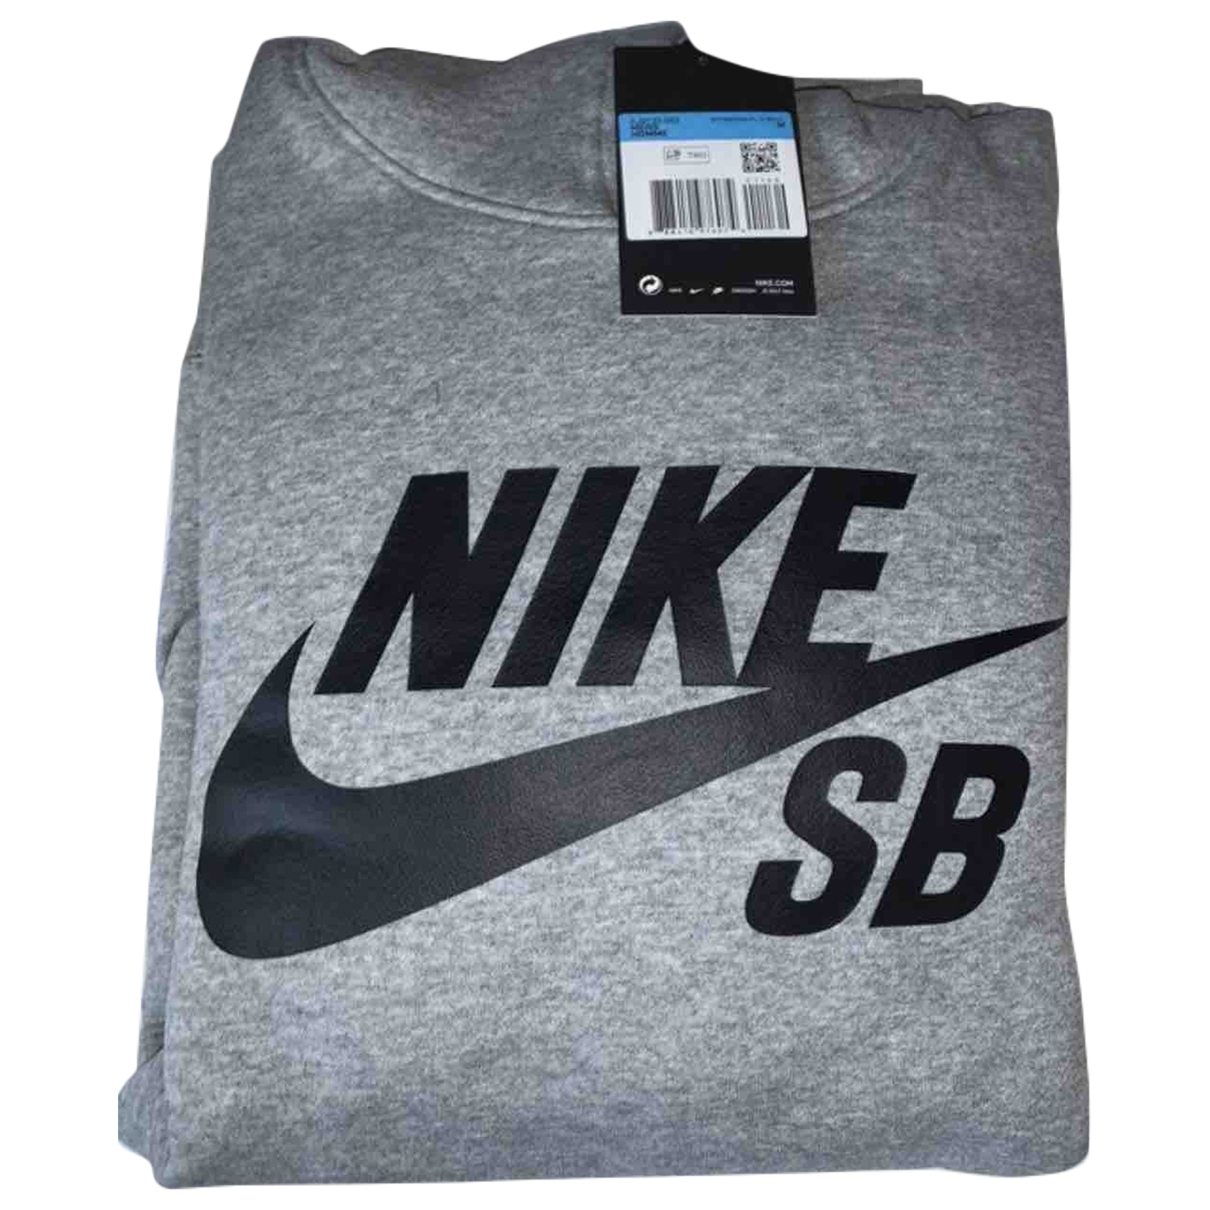 Nike \N Grey Cotton Knitwear & Sweatshirts for Men M International